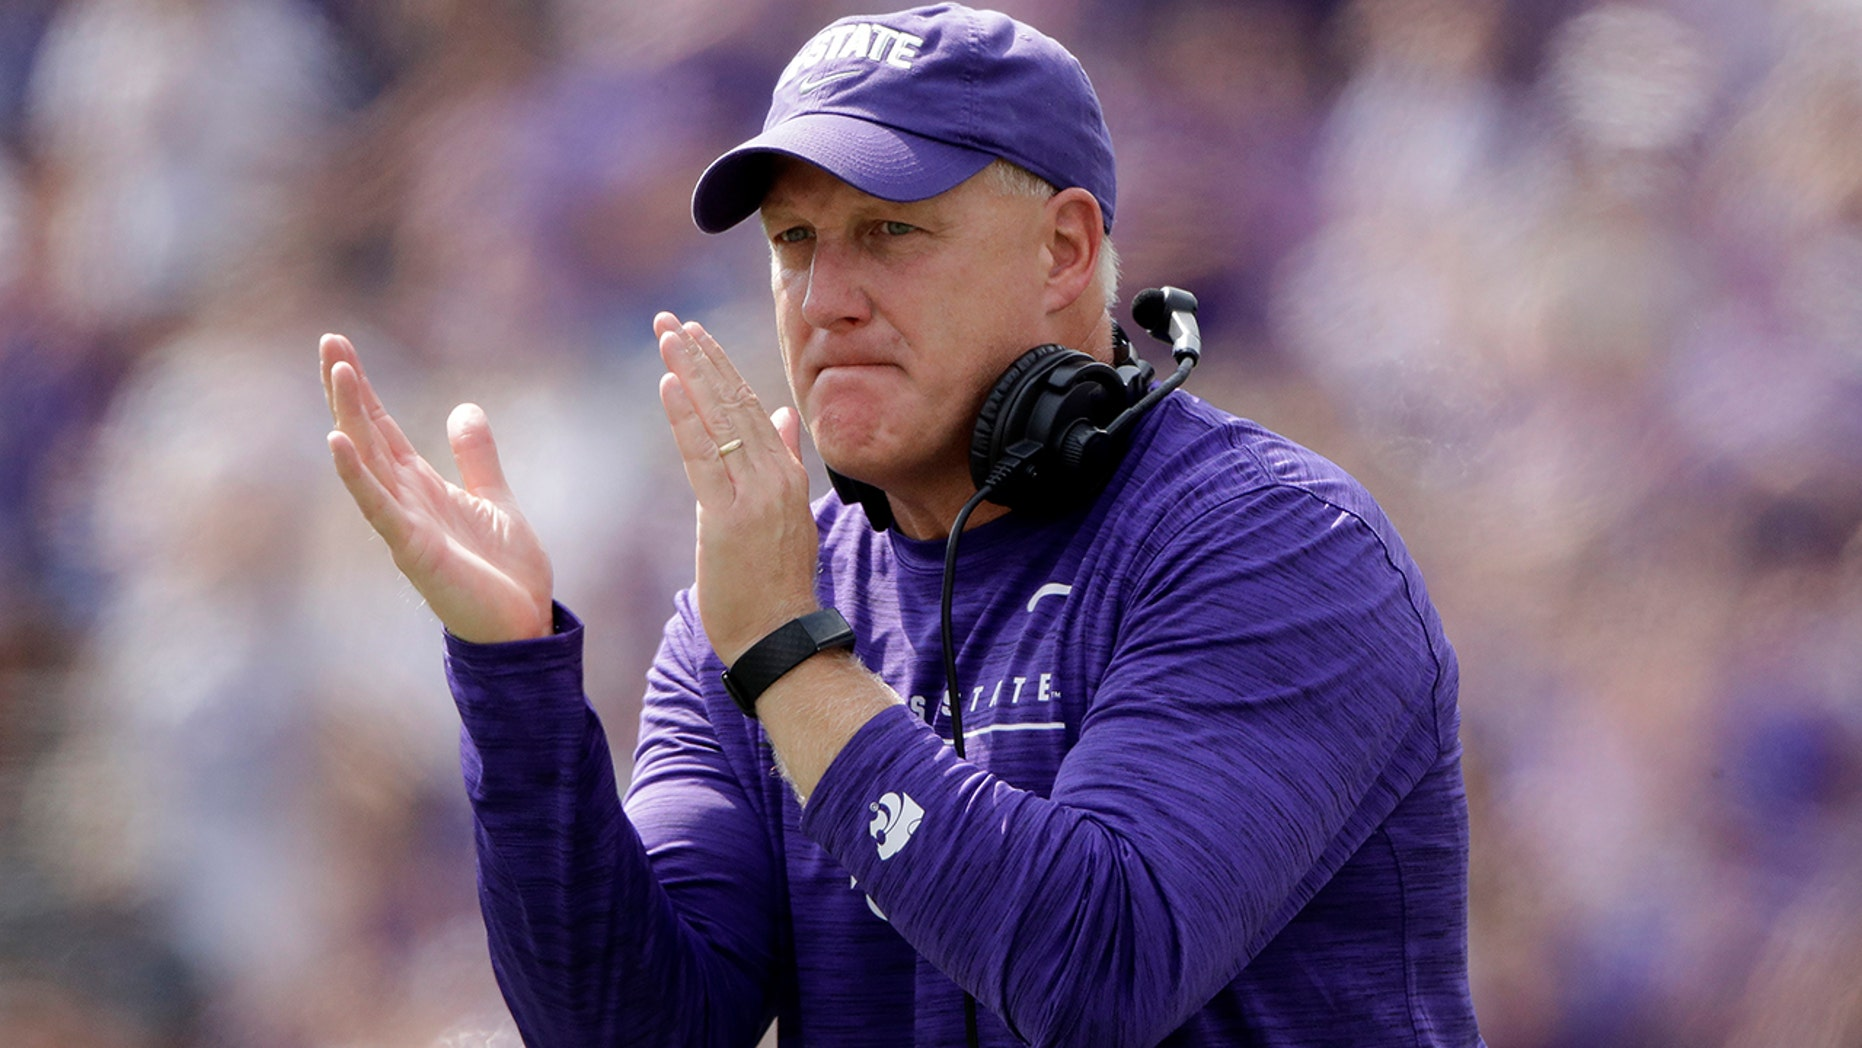 Kansas State head coach Chris Klieman cheers on his players during the first half of an NCAA college football game against Bowling Green Saturday, Sept. 7, 2019, in Manhattan, Kan. (AP Photo/Charlie Riedel)